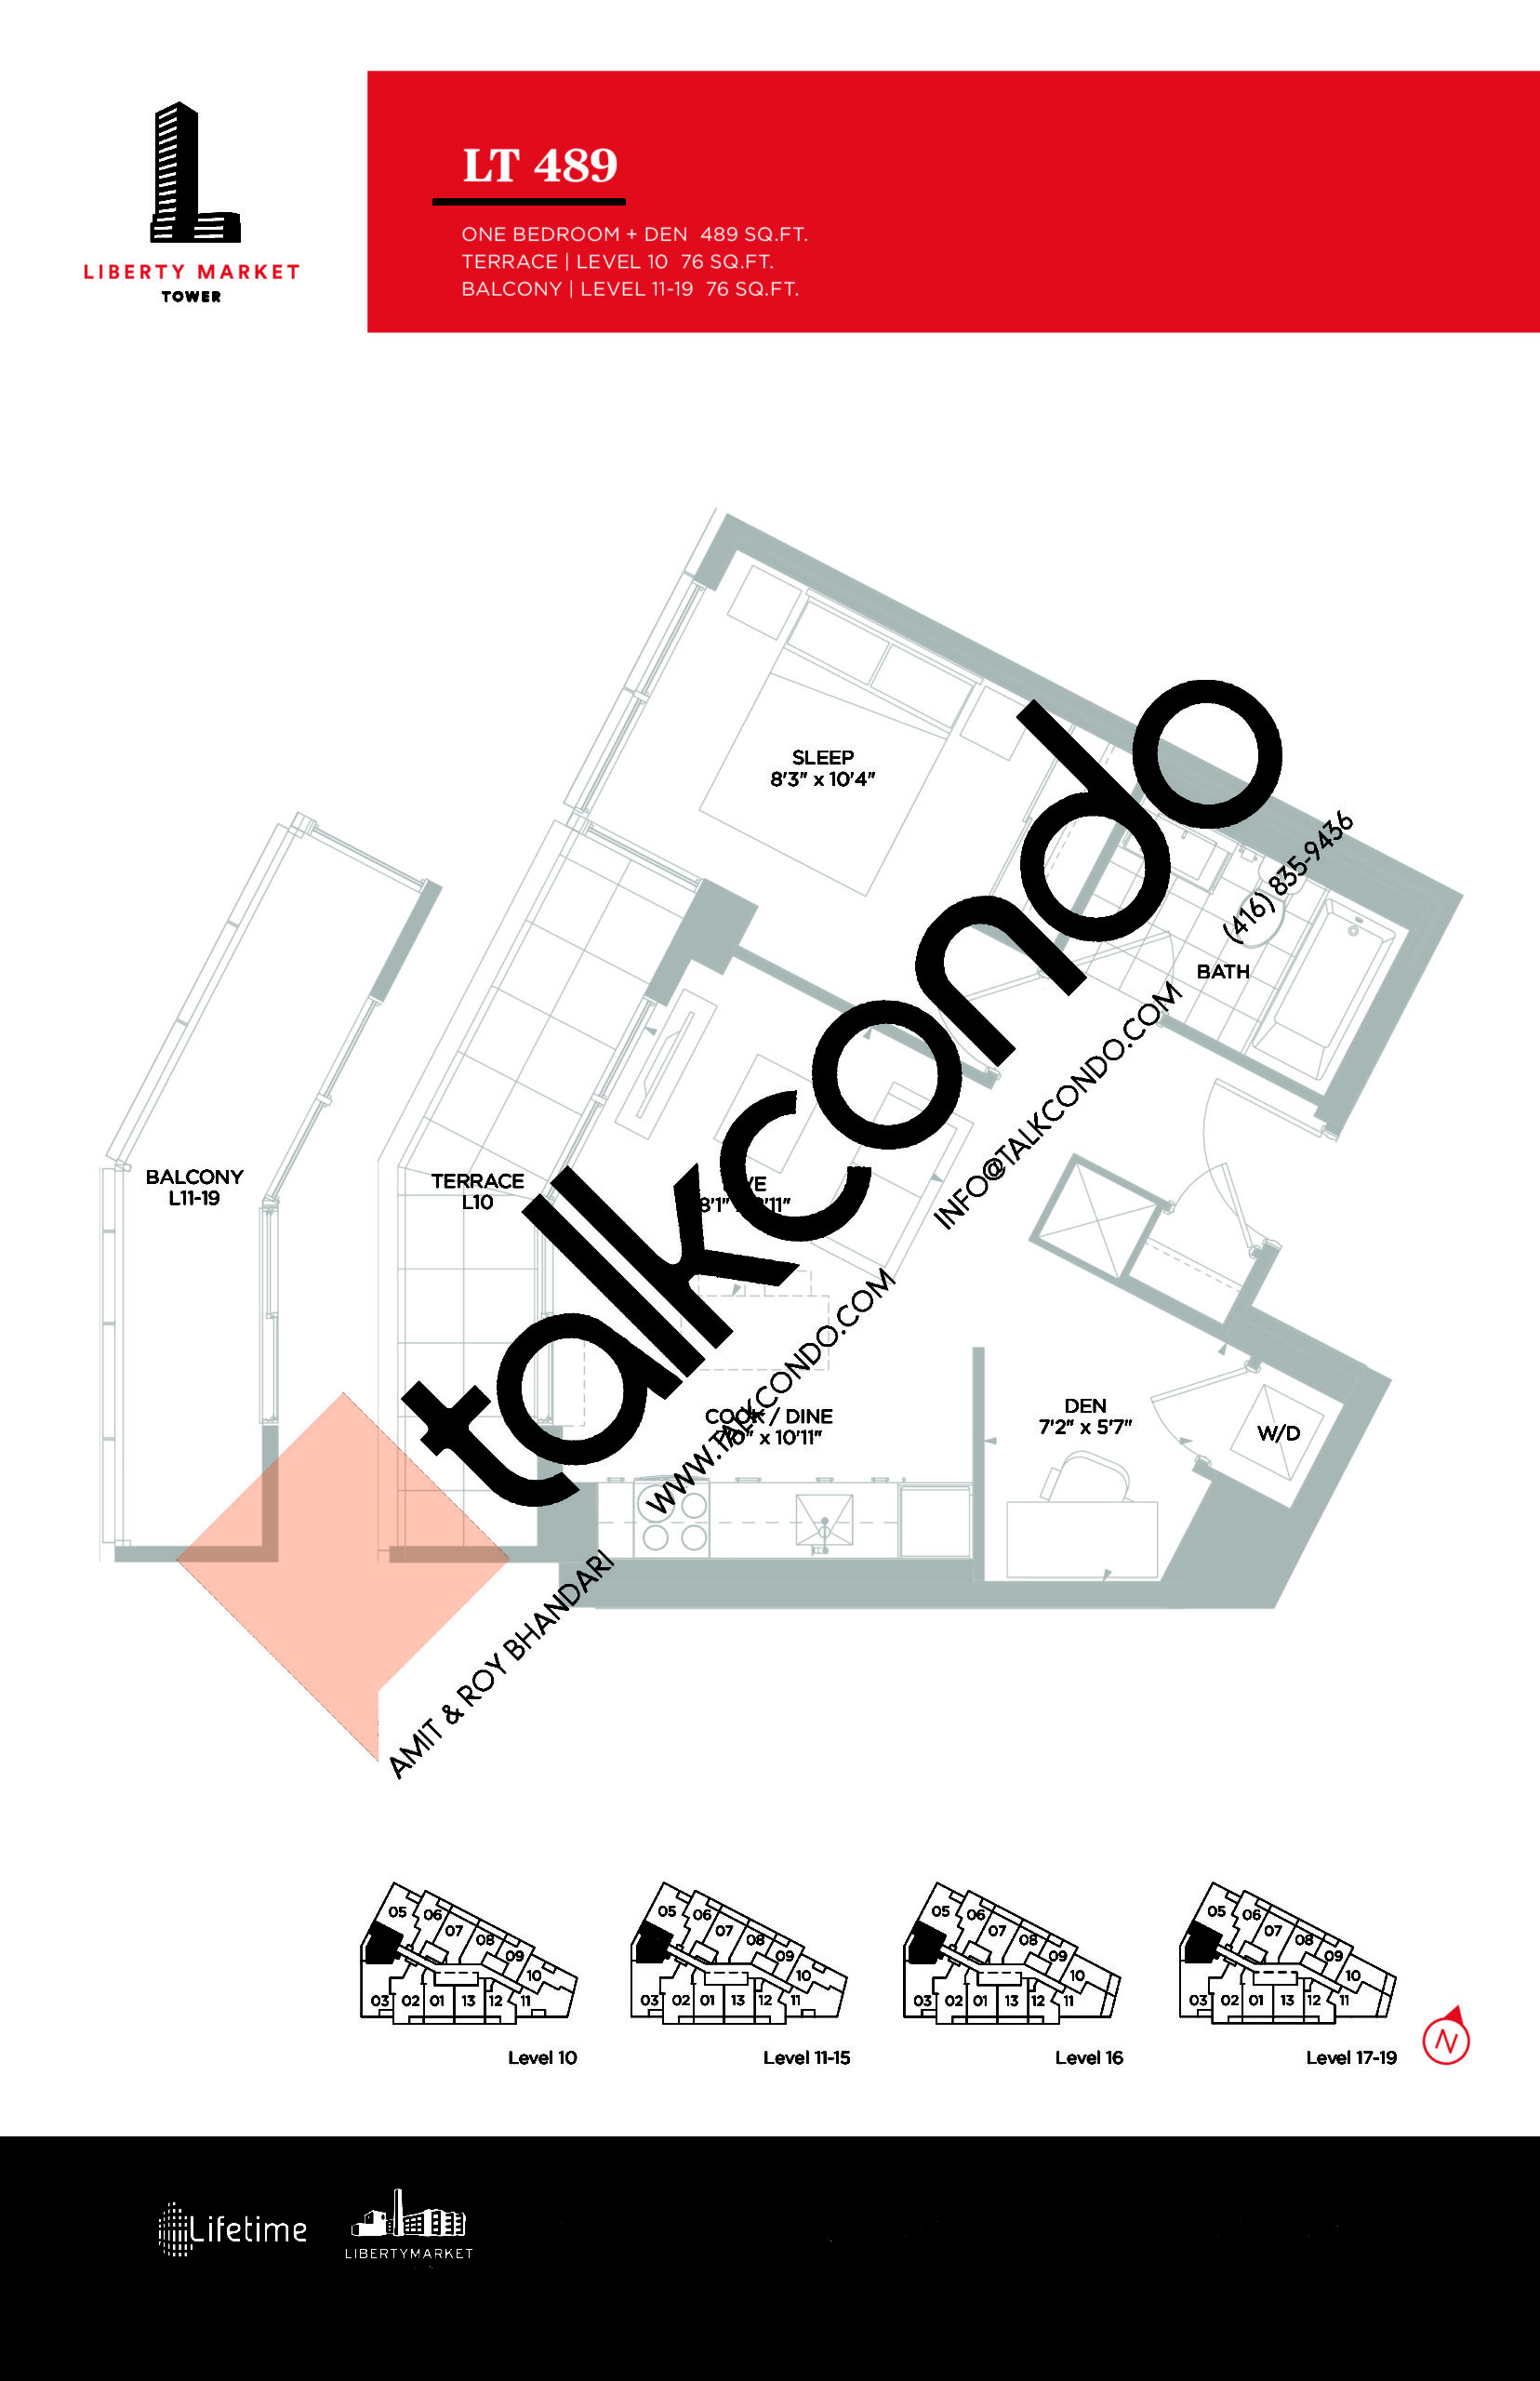 LT 489 - Terrace Collection Floor Plan at Liberty Market Tower Condos - 489 sq.ft